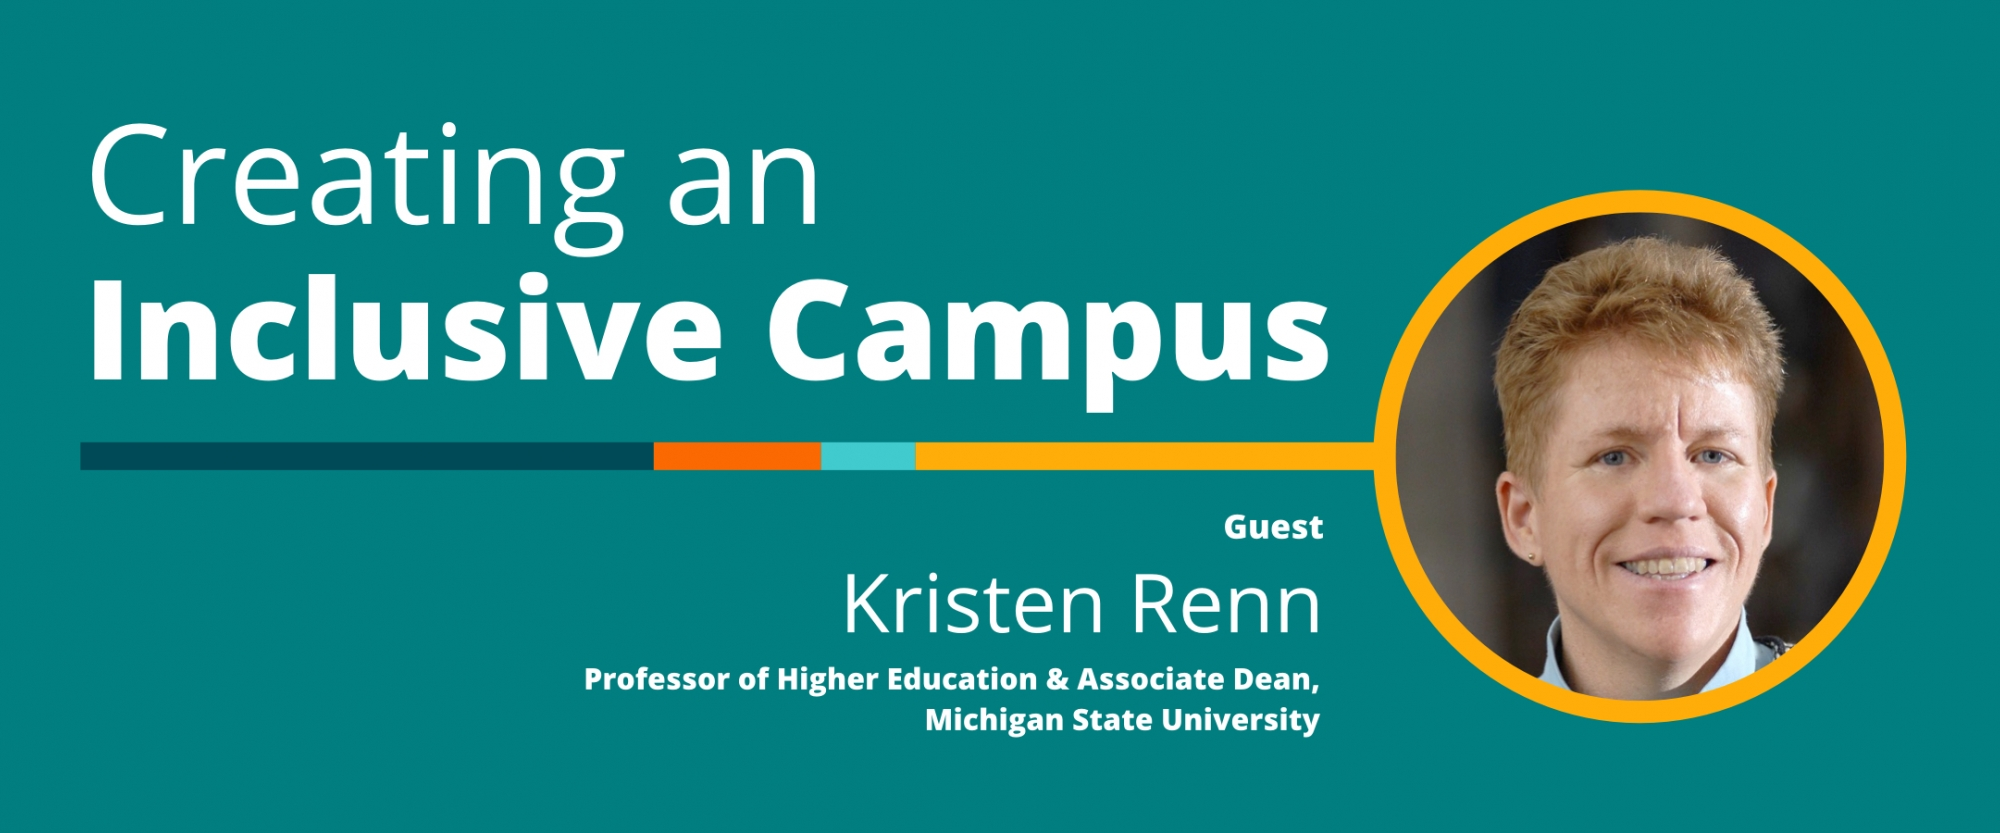 Creating an Inclusive Campus: A Conversation With Kristen Renn, Professor of Higher Education and Associate Dean, Michigan State University